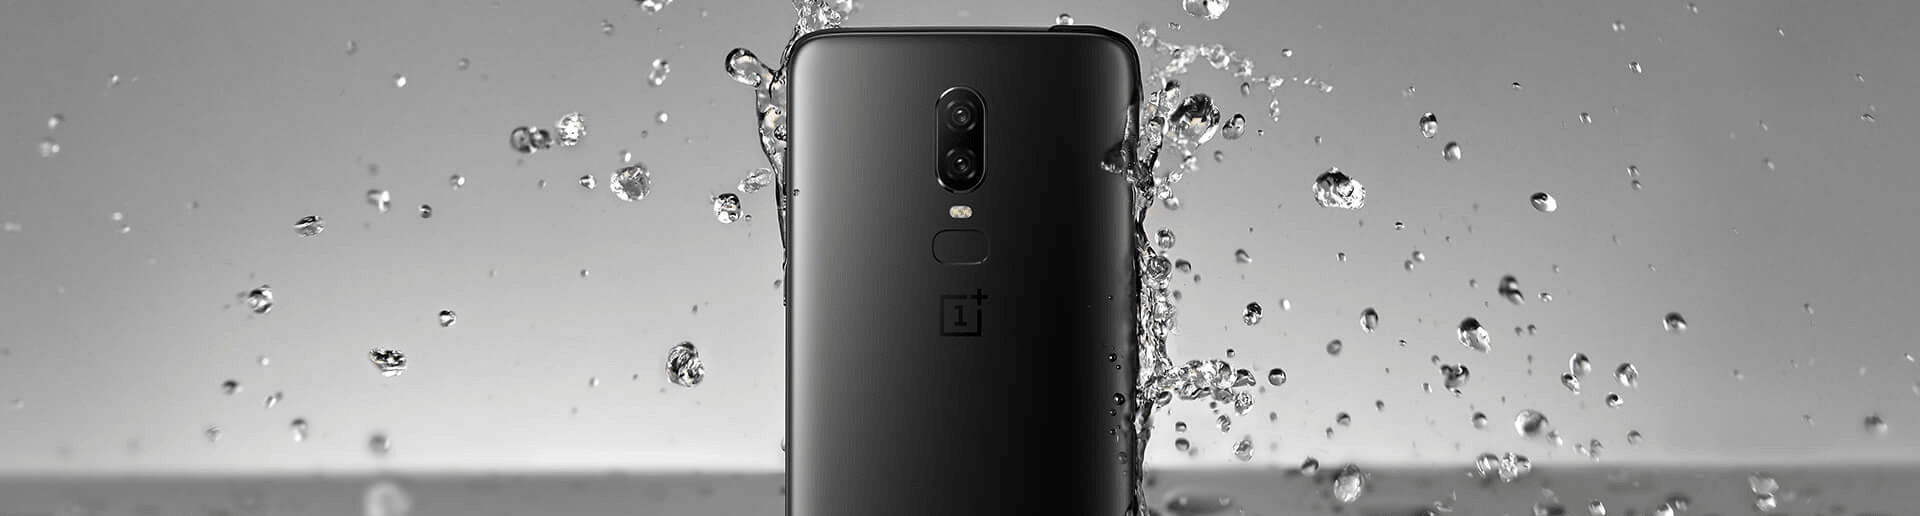 oneplus 6 price in qatar